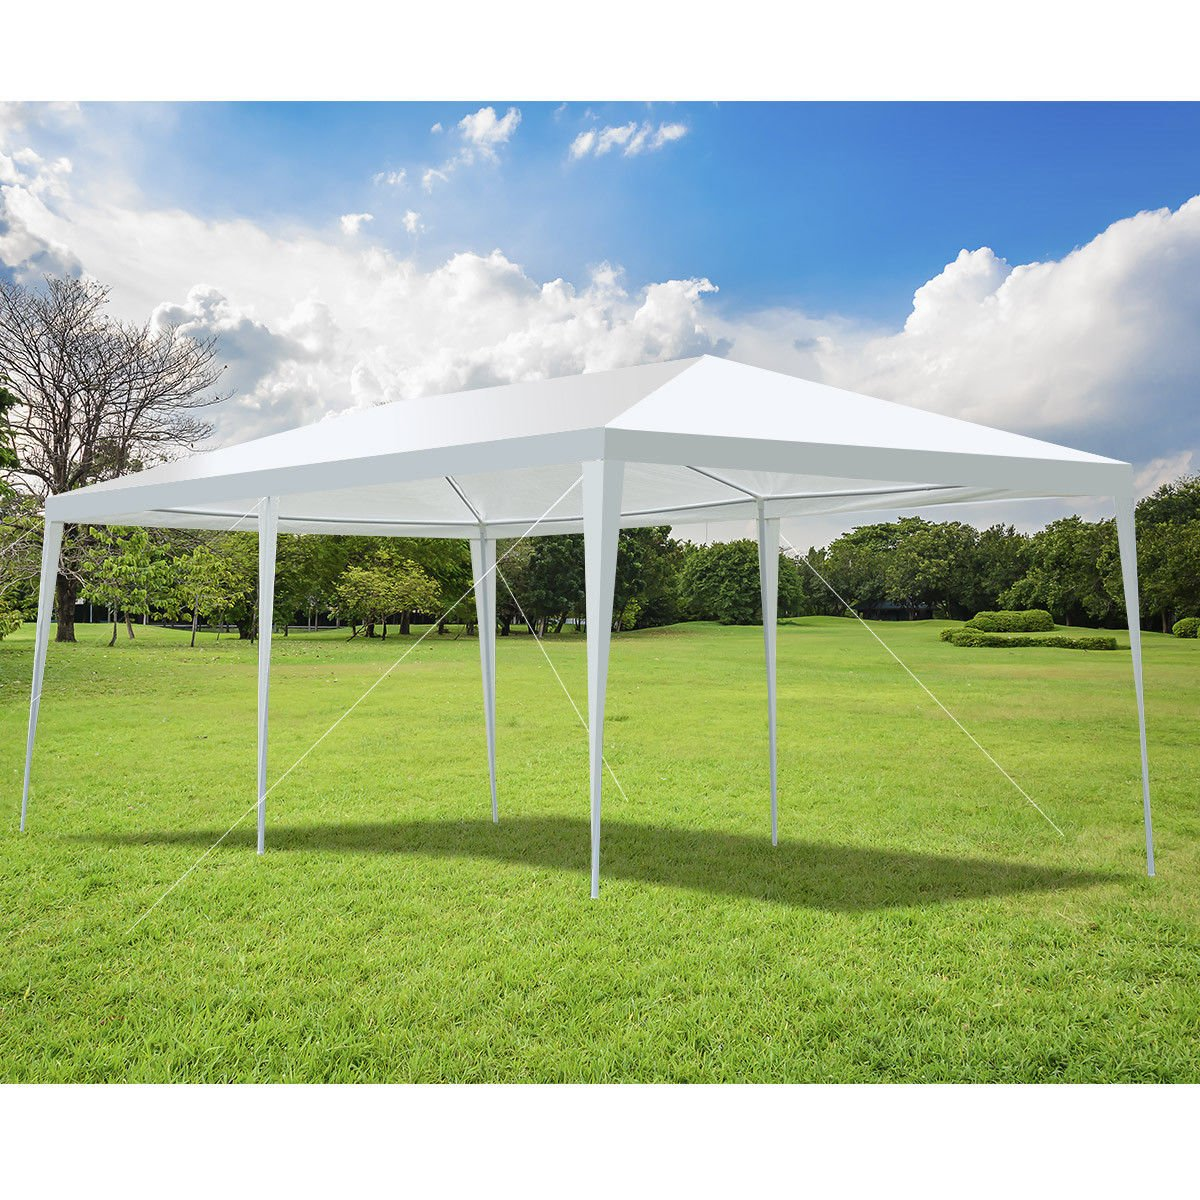 TANGKULA 10'X20' Portable Canopy Tent Wedding Party Tent Outdoor All-Purpose Weather Resistance Garden Tent Instant Shelter, White